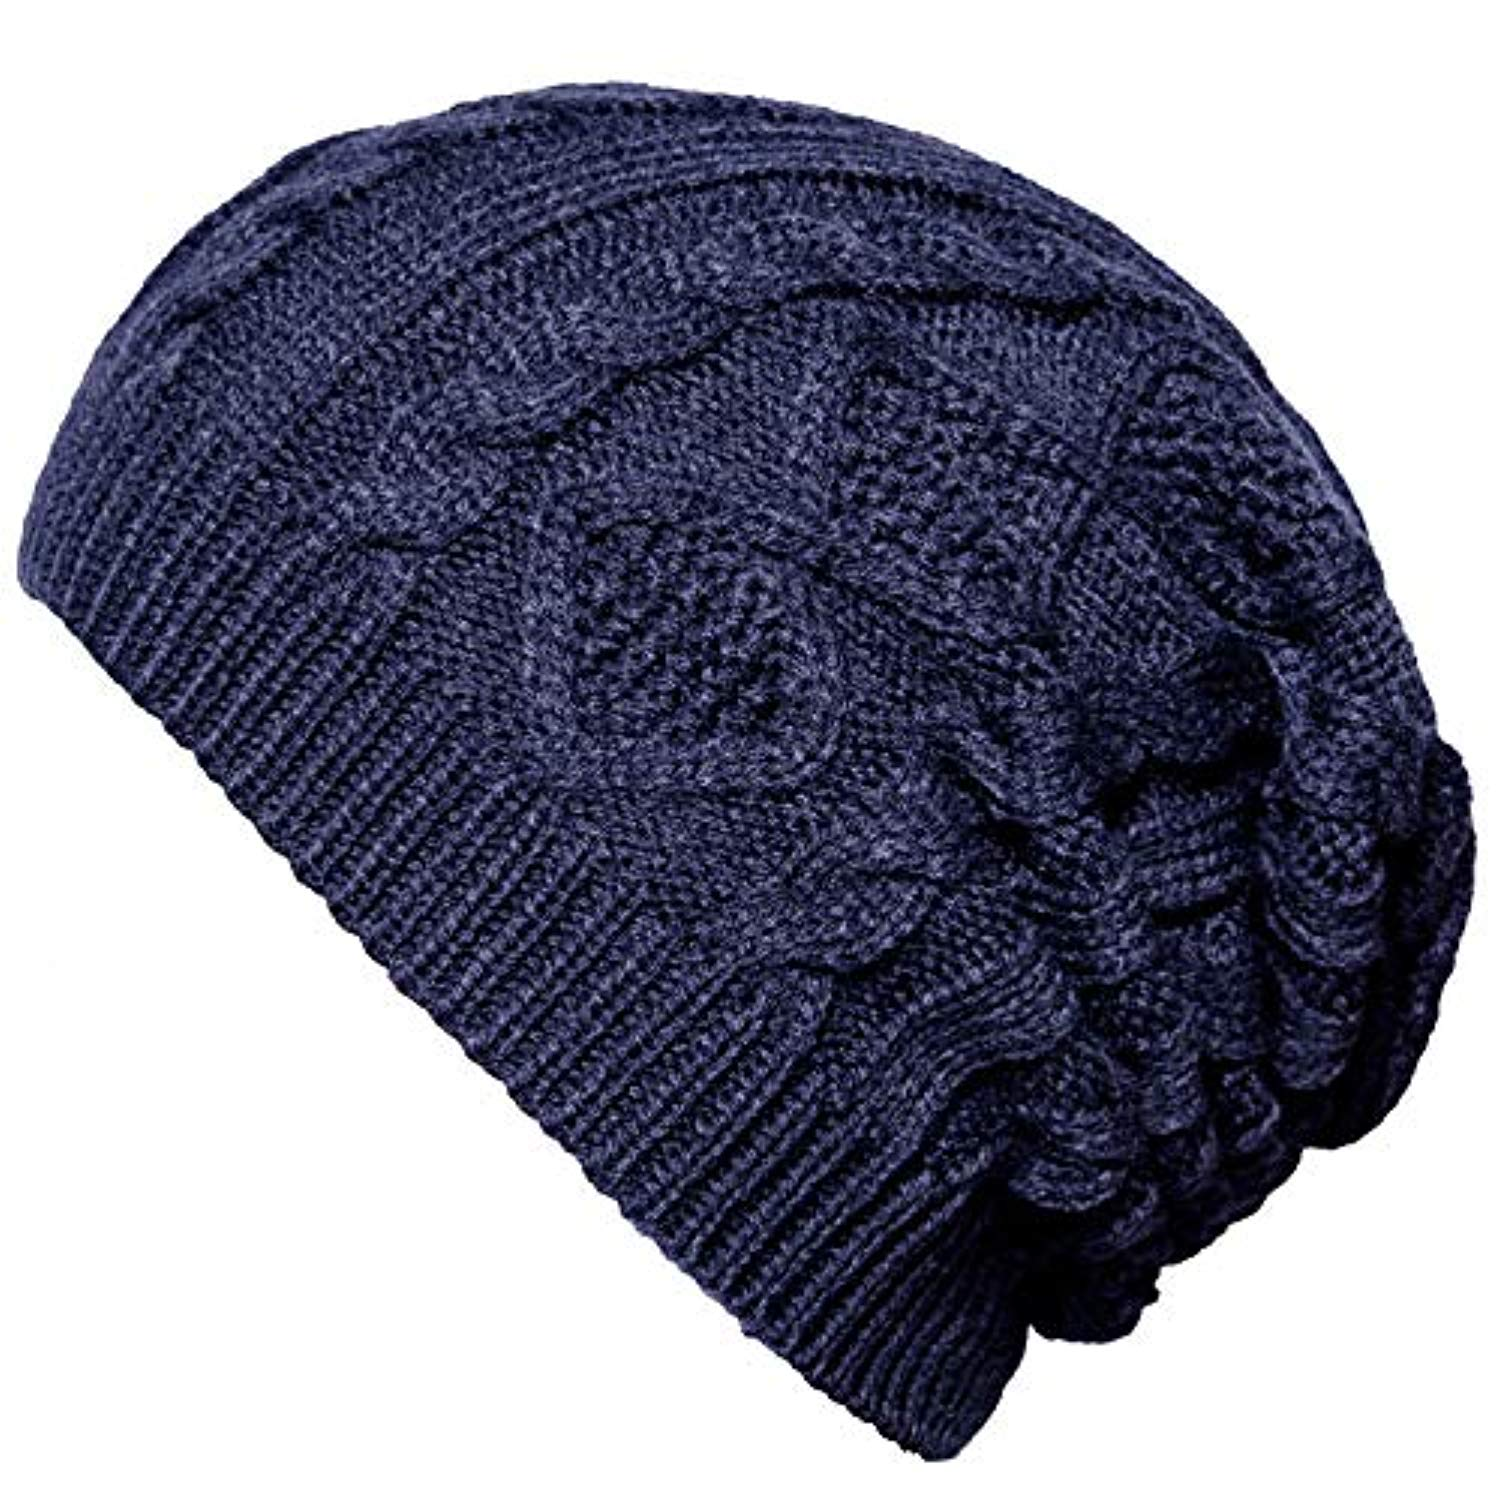 f18159f12 Mens Winter Warm Knitting Hats Wool Baggy Slouchy Beanie Hat Skull Cap,  View Warm Knitting, Product Details from Ningbo Jingreat Trade Co., Ltd. on  ...